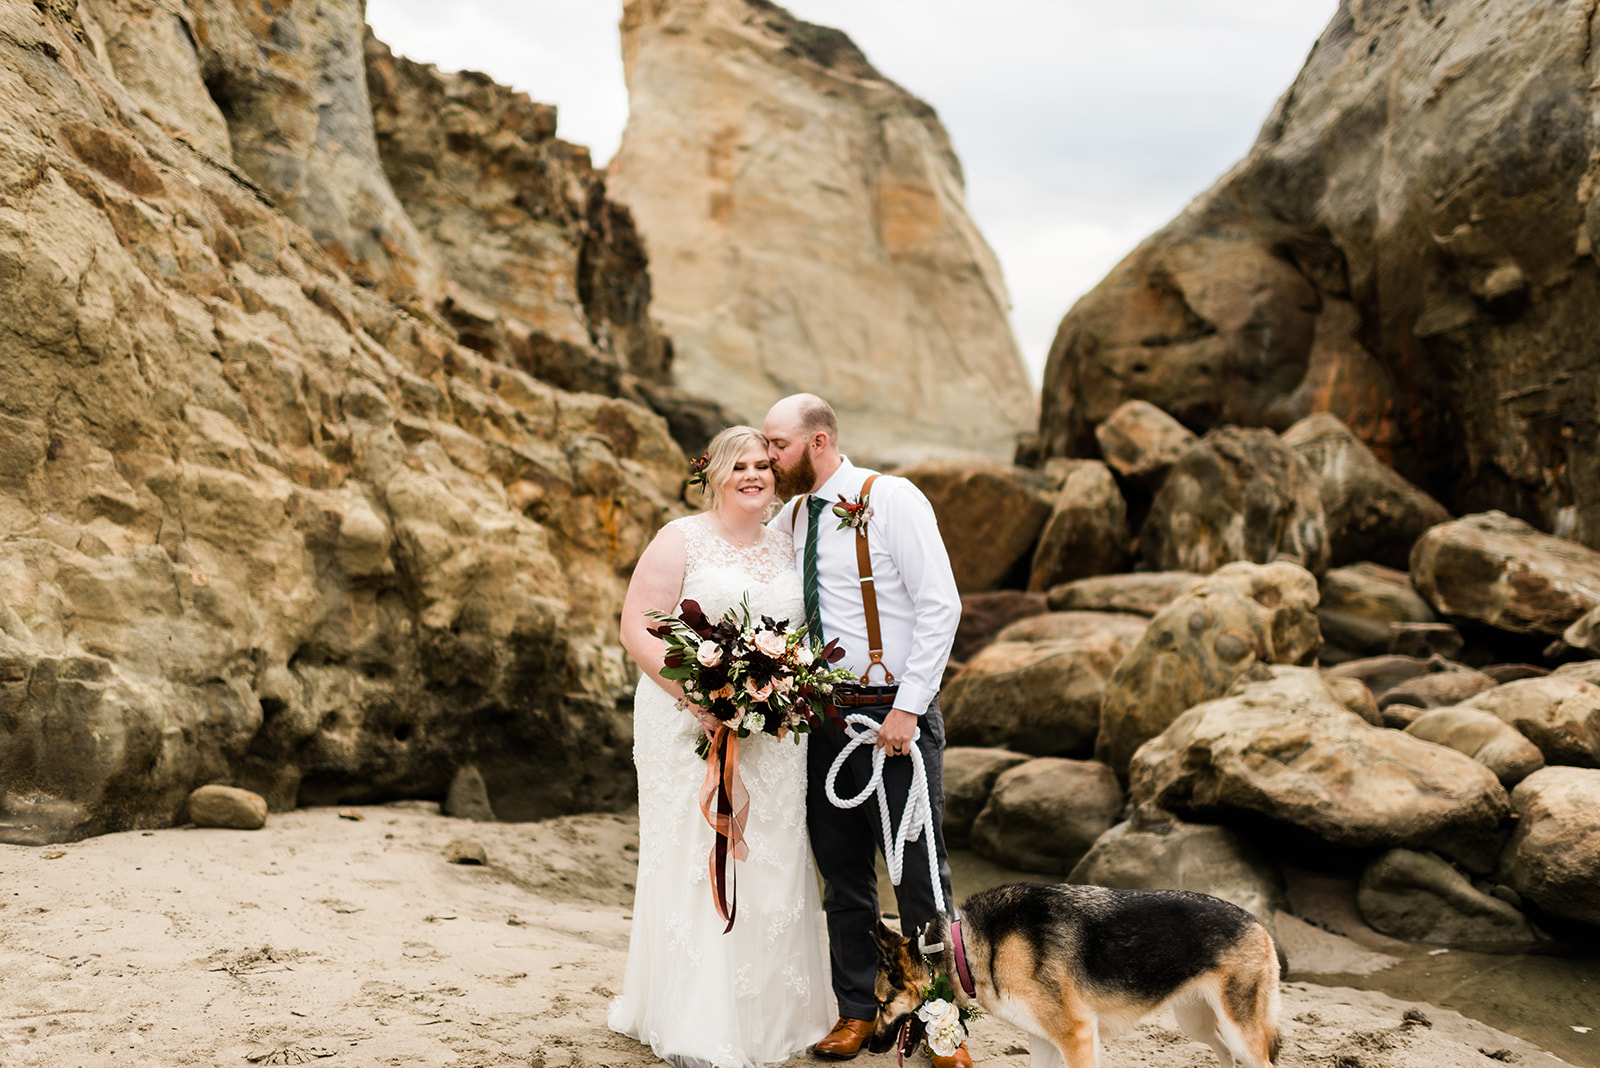 Amber & Russell at their Cape Kiwanda elopement. Image by Forthright Photo.